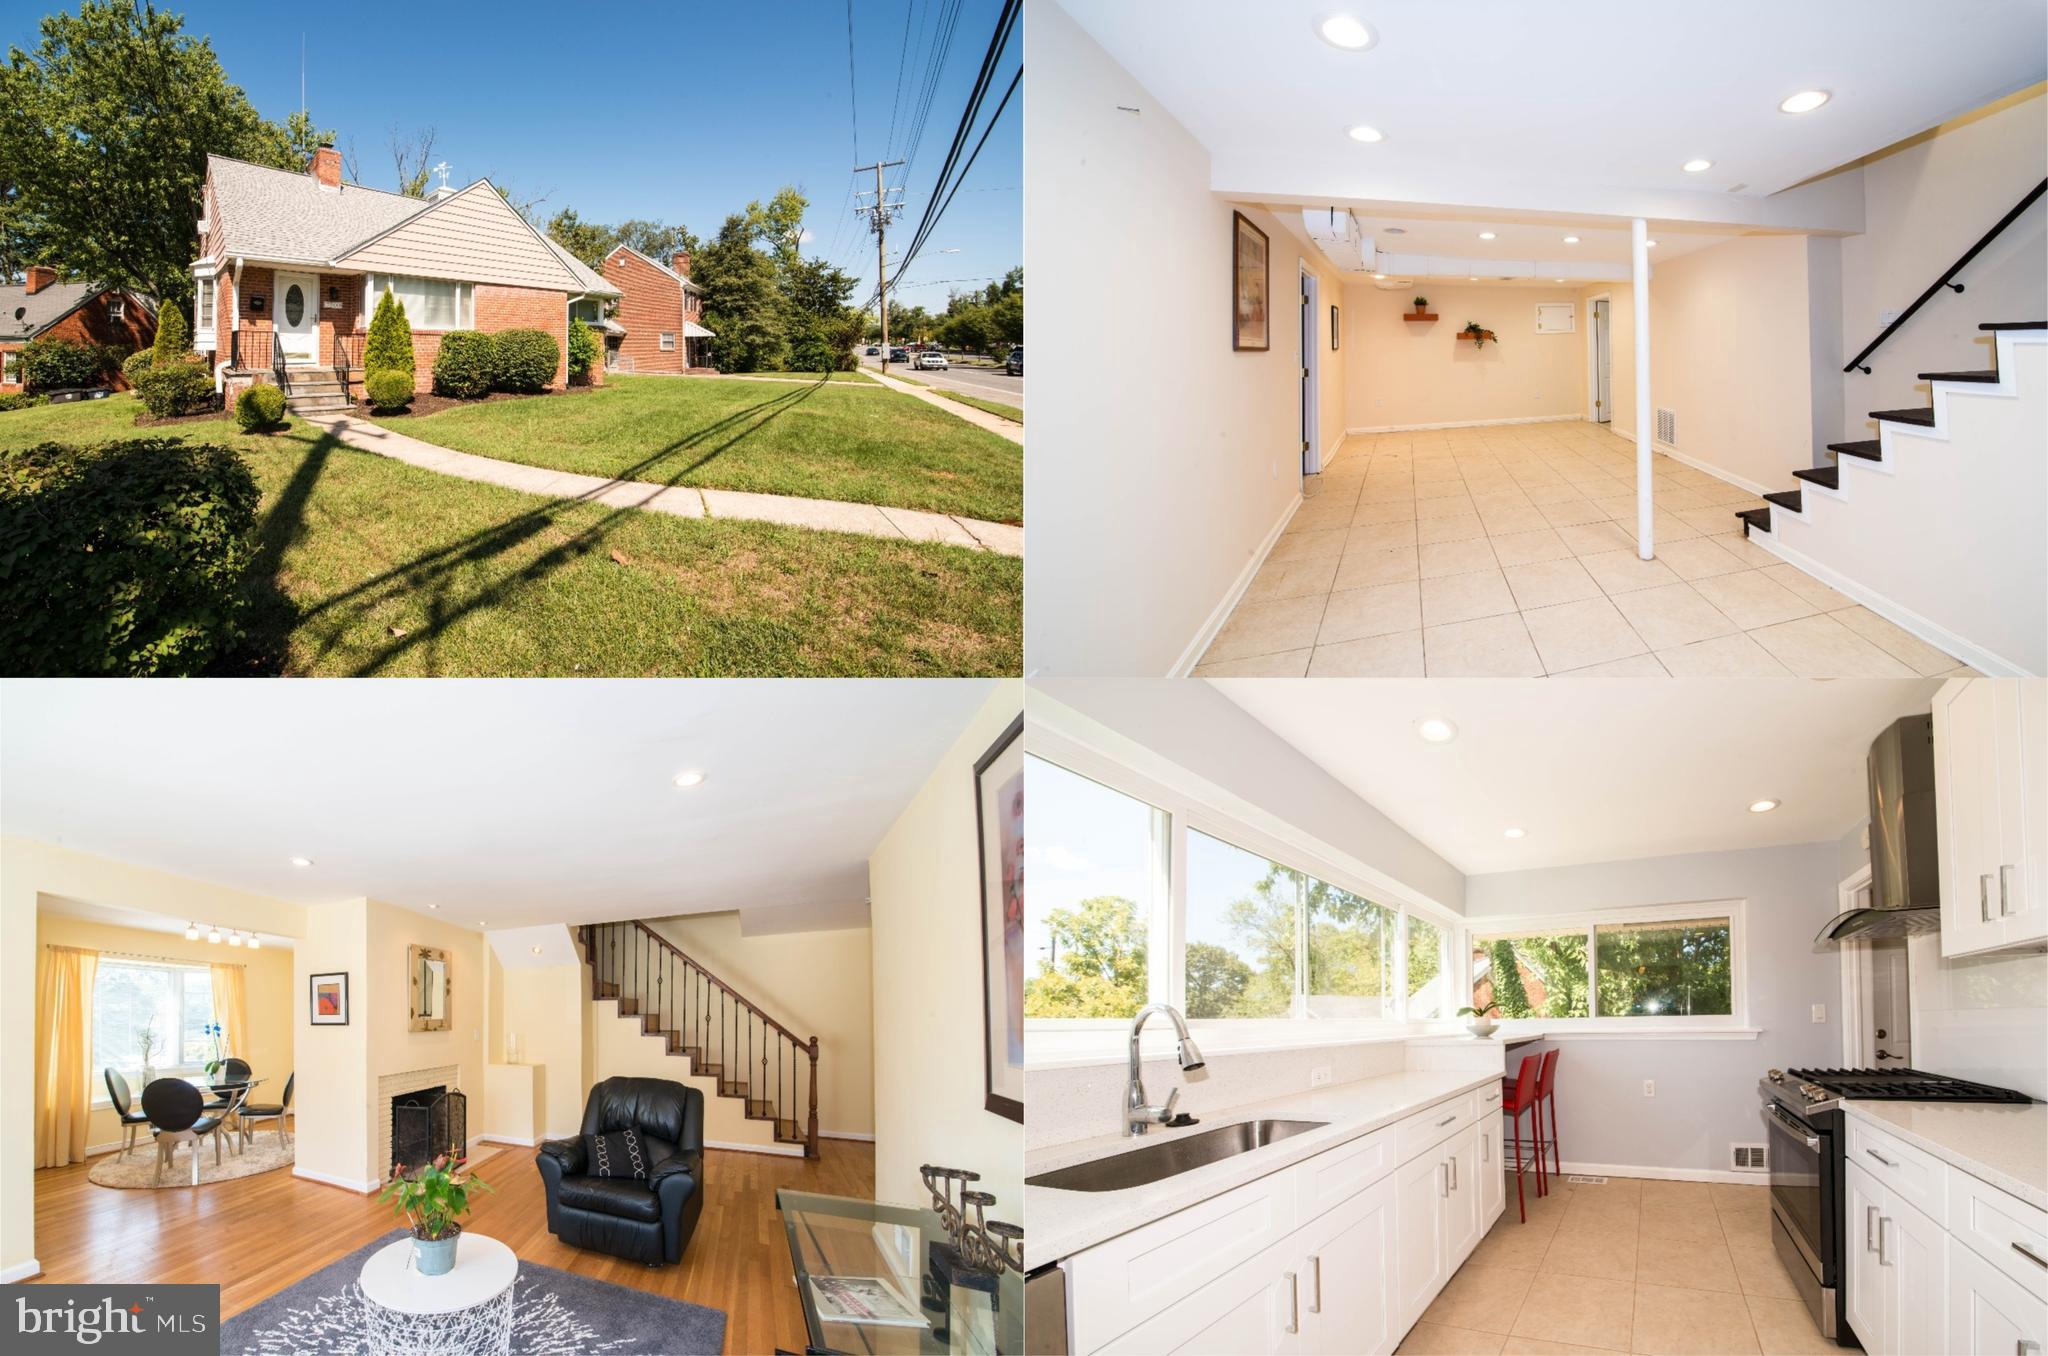 7300 ADELPHI ROAD, HYATTSVILLE, MD 20783